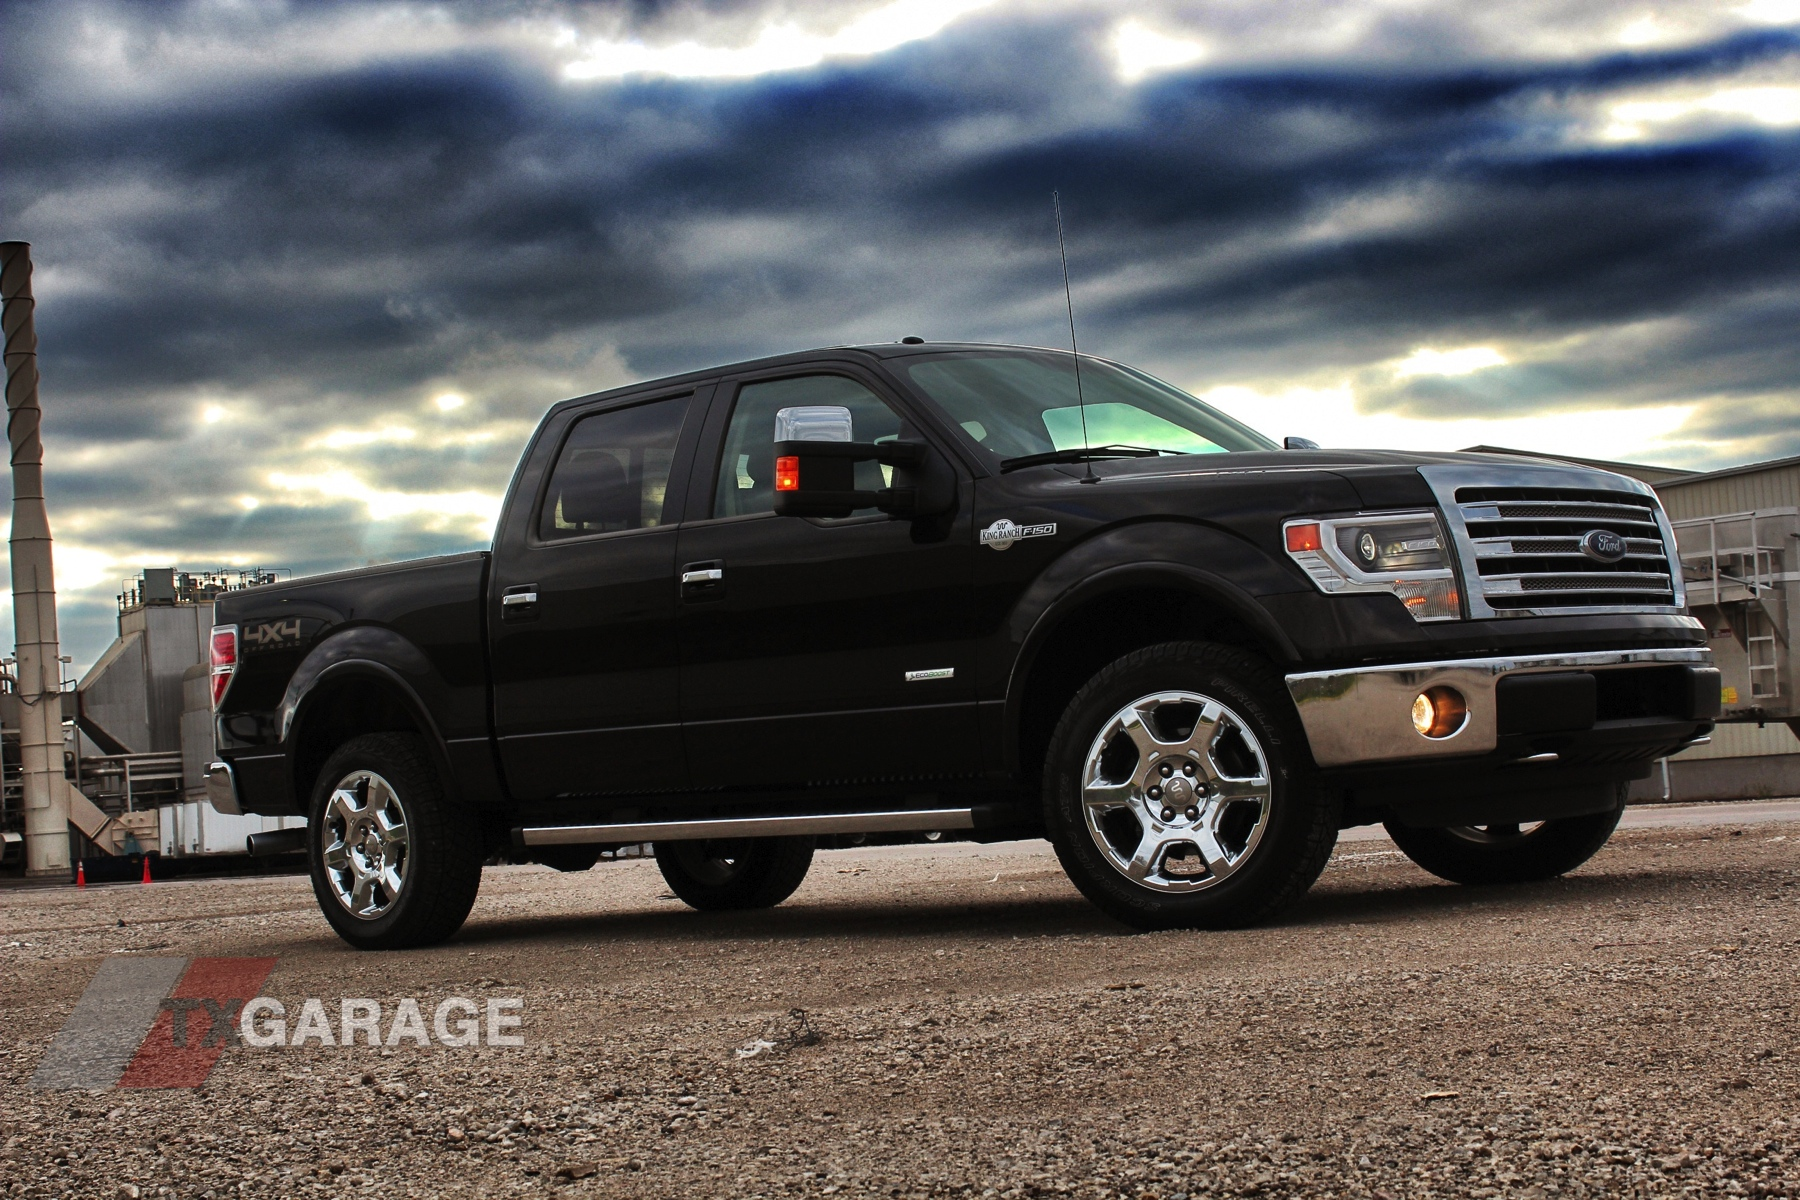 Full Review of the 2013 Ford F 150 King Ranch EcoBoost 4x4